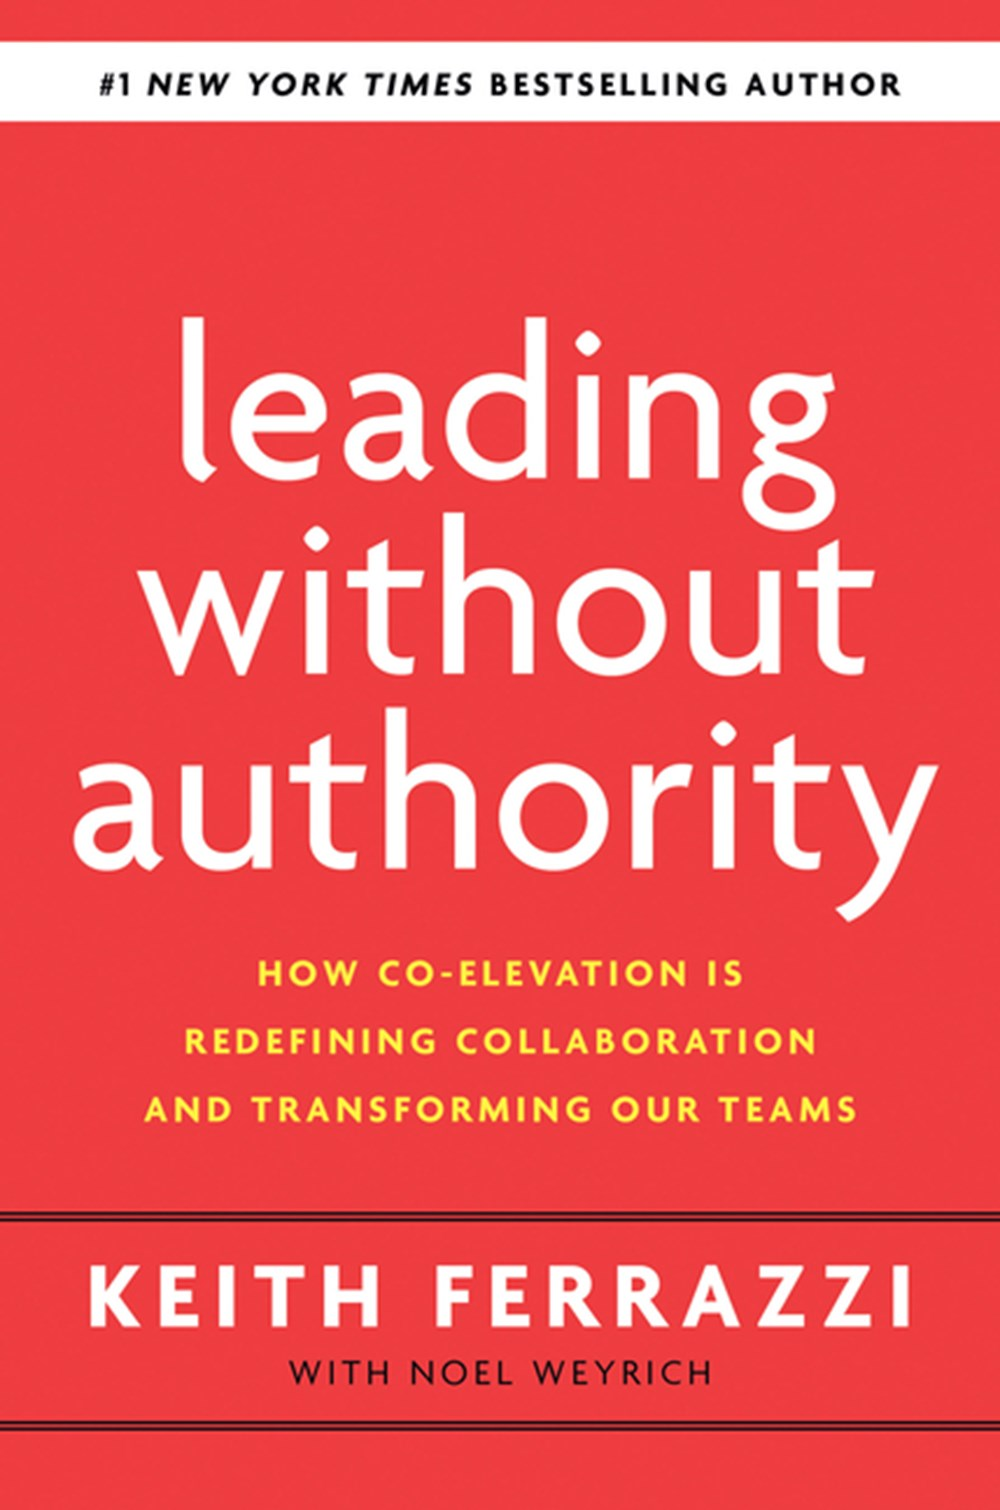 Leading Without Authority How the New Power of Co-Elevation Can Break Down Silos, Transform Teams, a